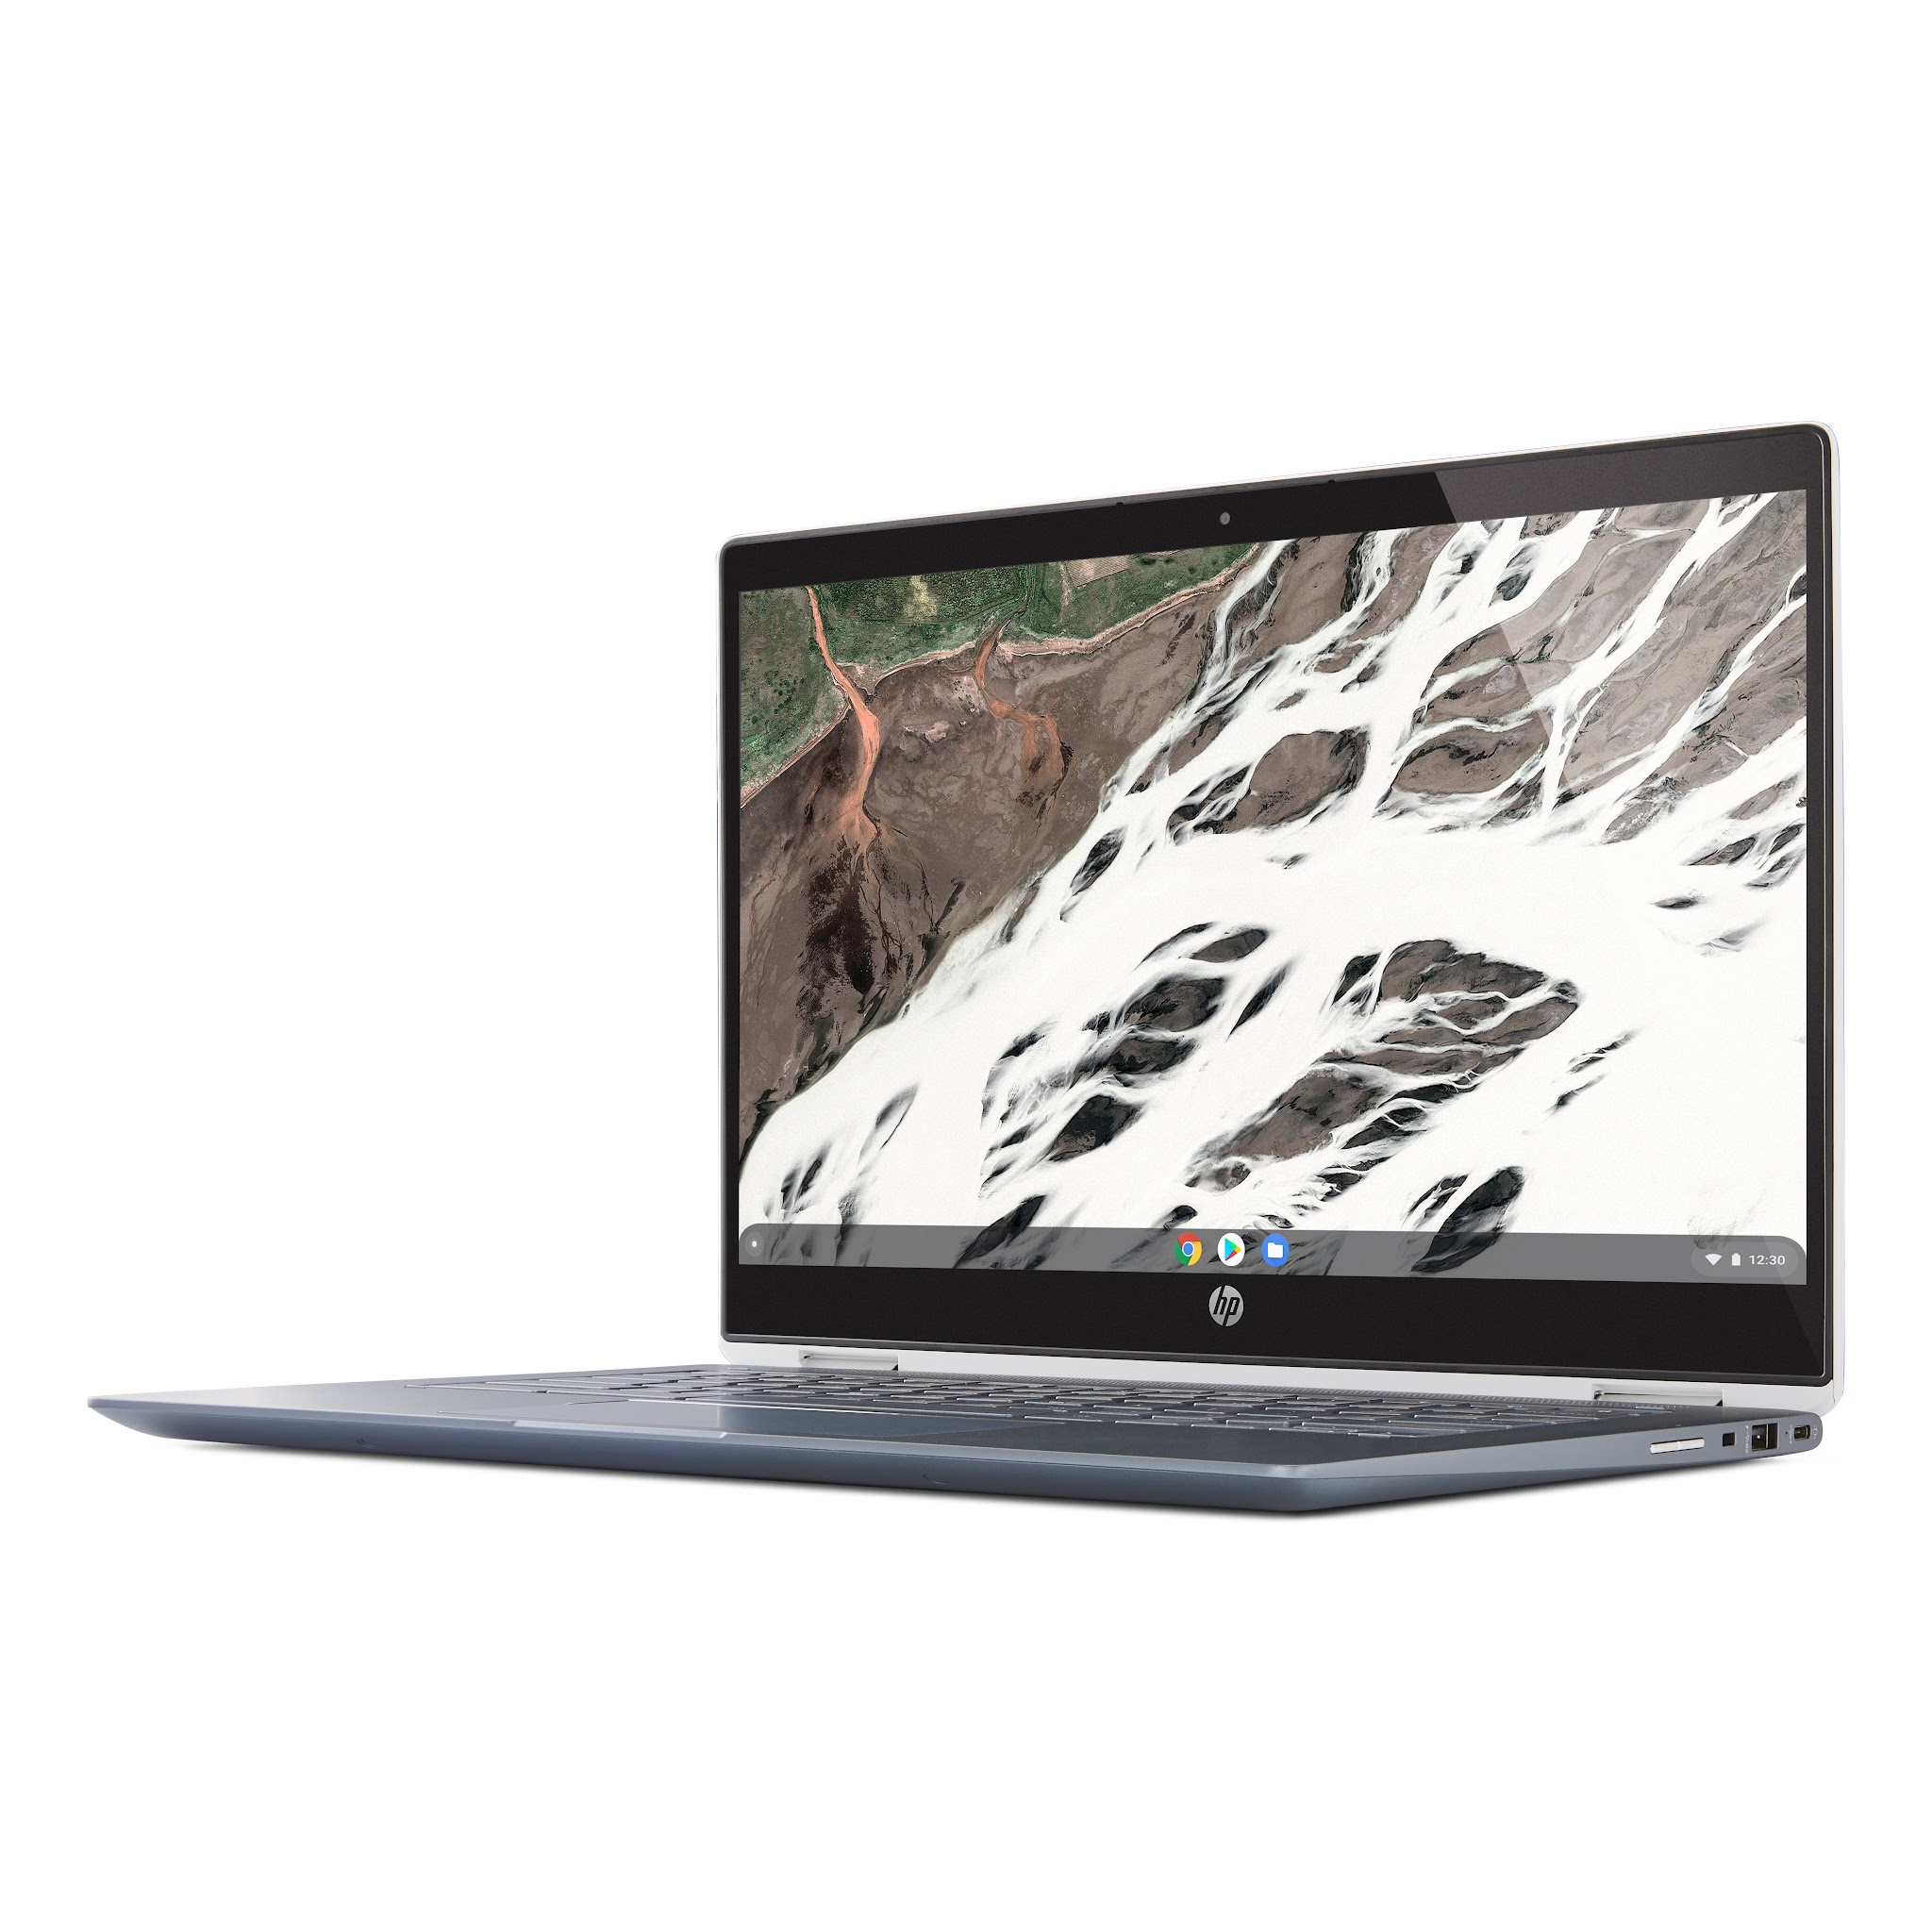 HP Chromebook x360 14 - photo 7